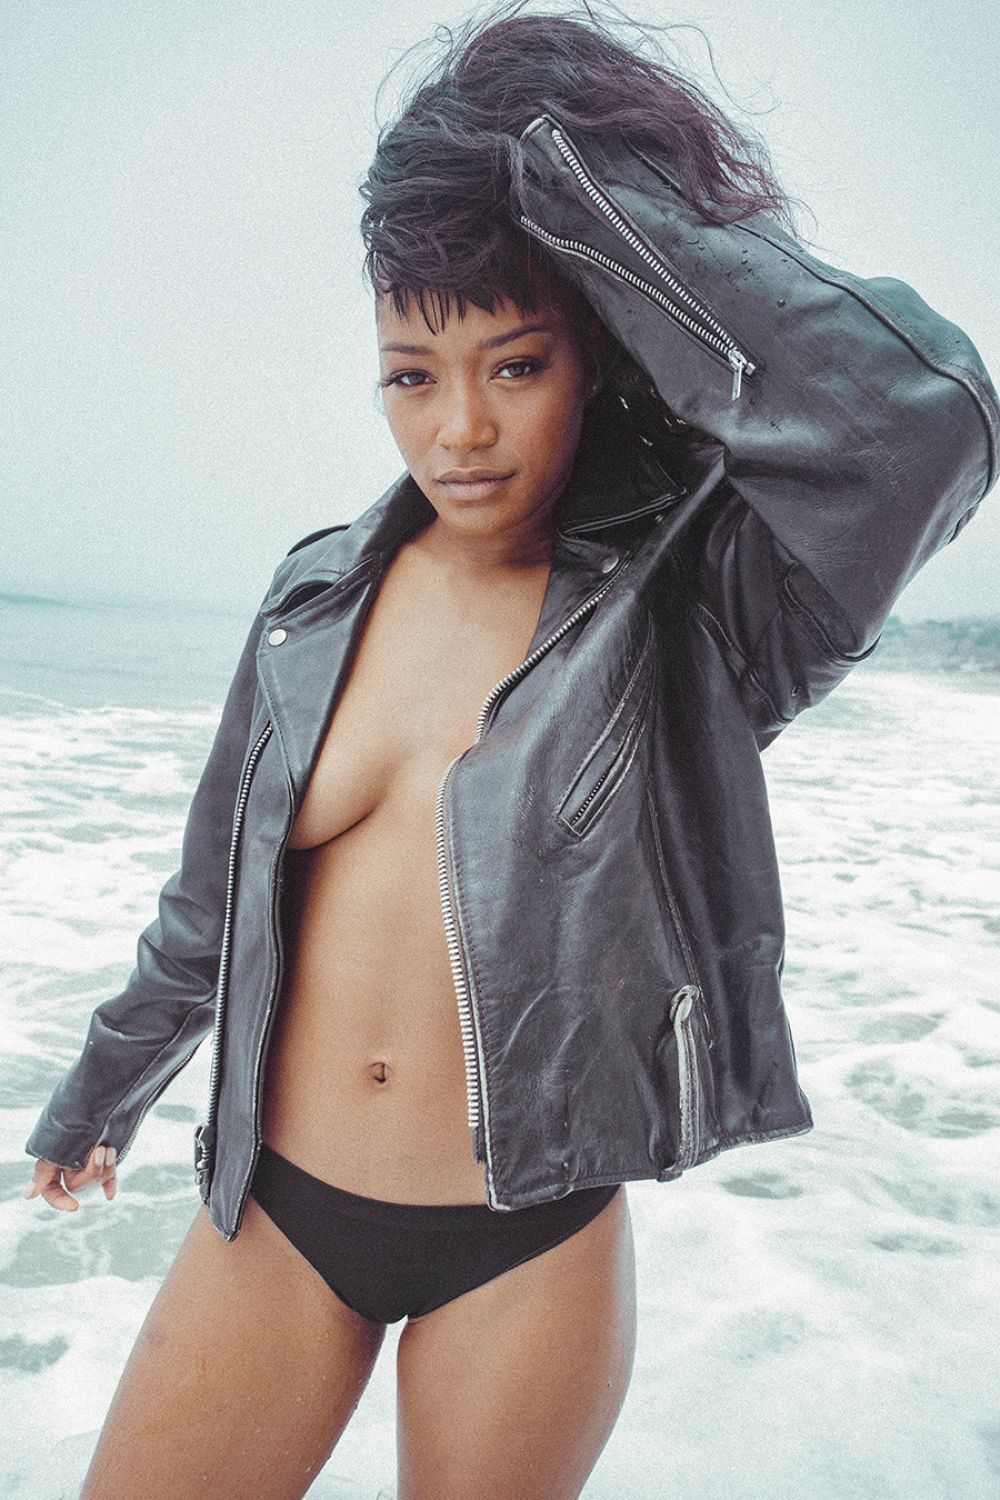 Keke Palmer At Beach Photoshoot May 2016 - Celebzz - Celebzz